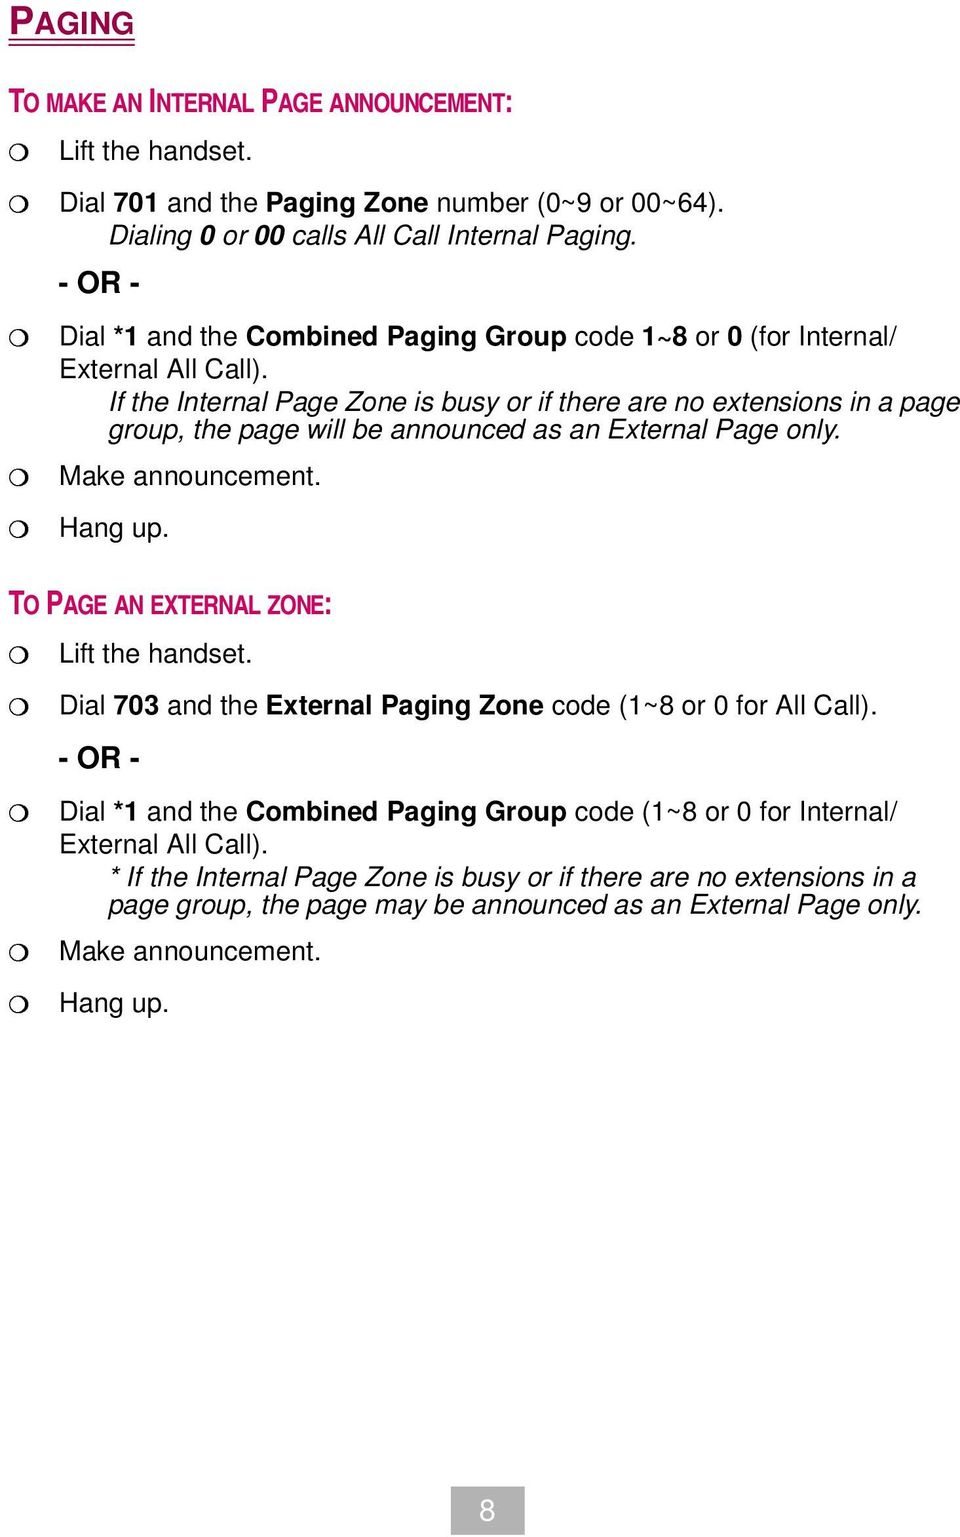 If the Internal Page Zone is busy or if there are no extensions in a page group, the page will be announced as an External Page only. Make announcement. ang up.